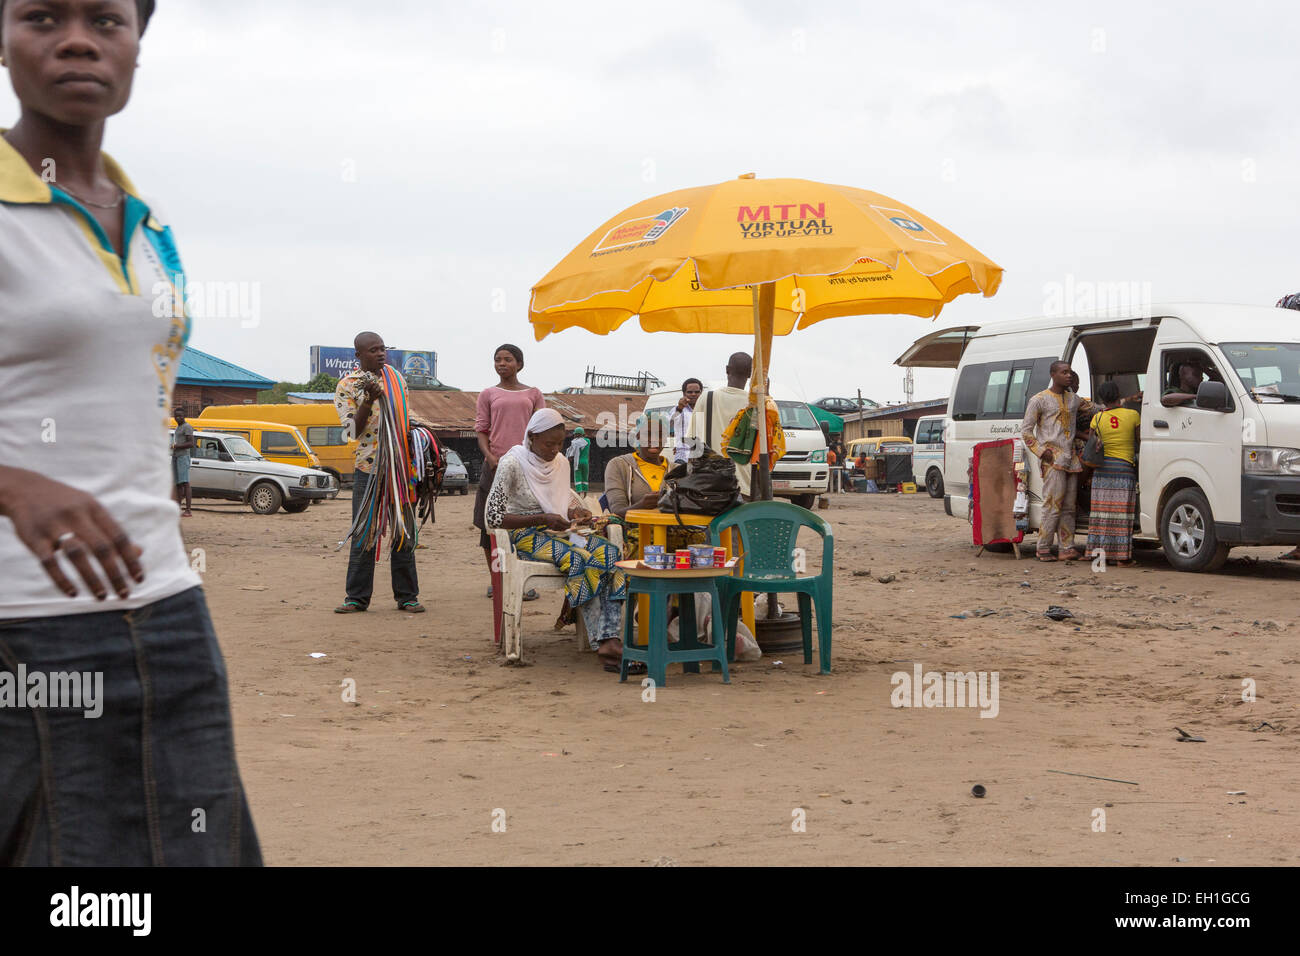 Lagos, Nigeria; People sit under an MTN umbrella in a carpark in th capital - Stock Image